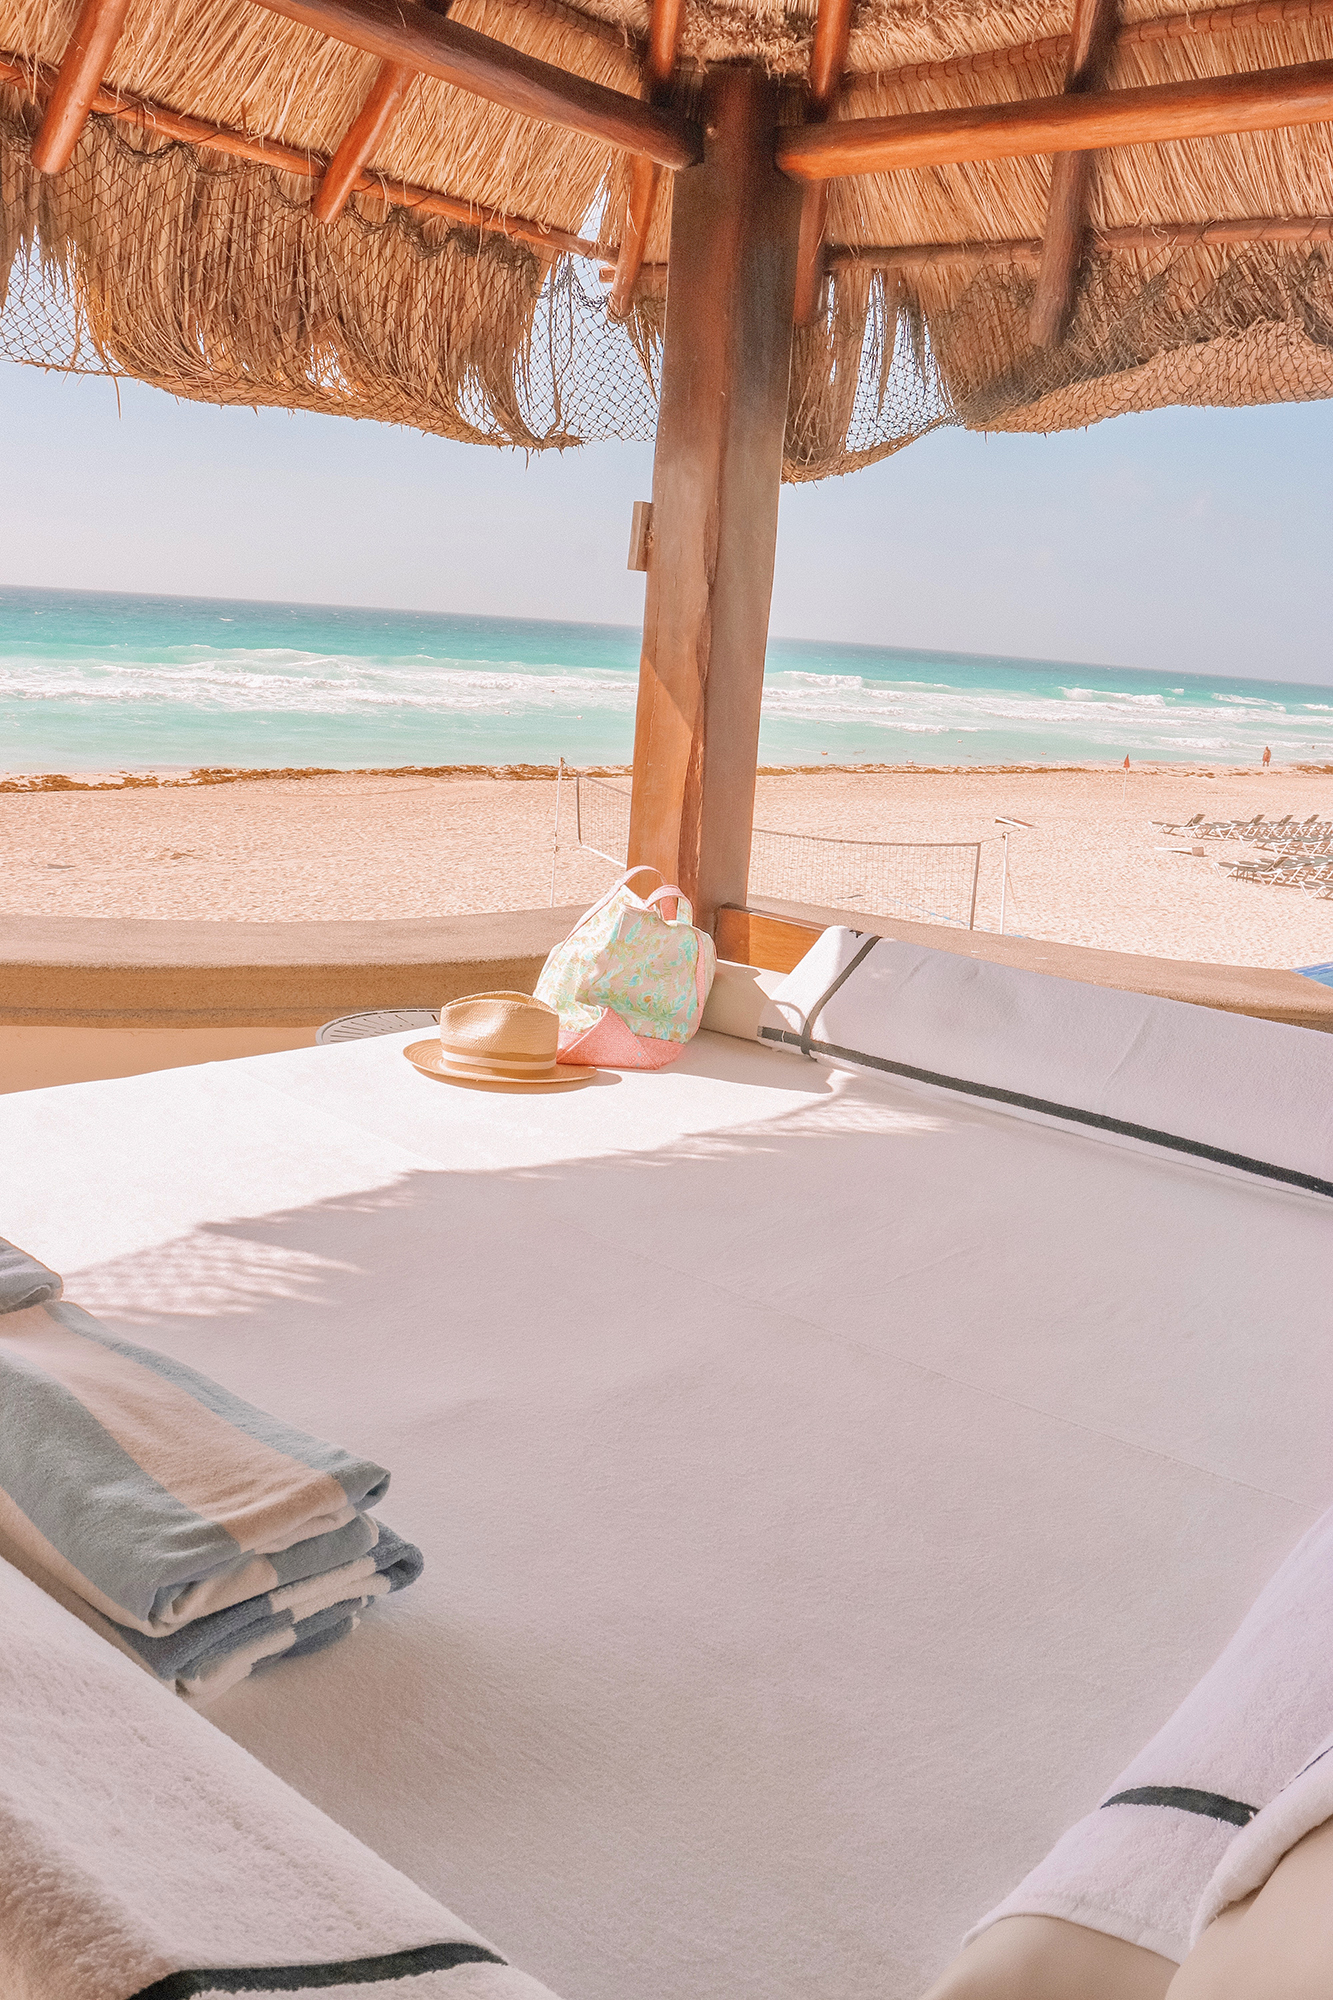 Cabana Day in Cancun Mexico | Travel Diary of my trip to the Yucatán Peninsula | Kristy Wicks